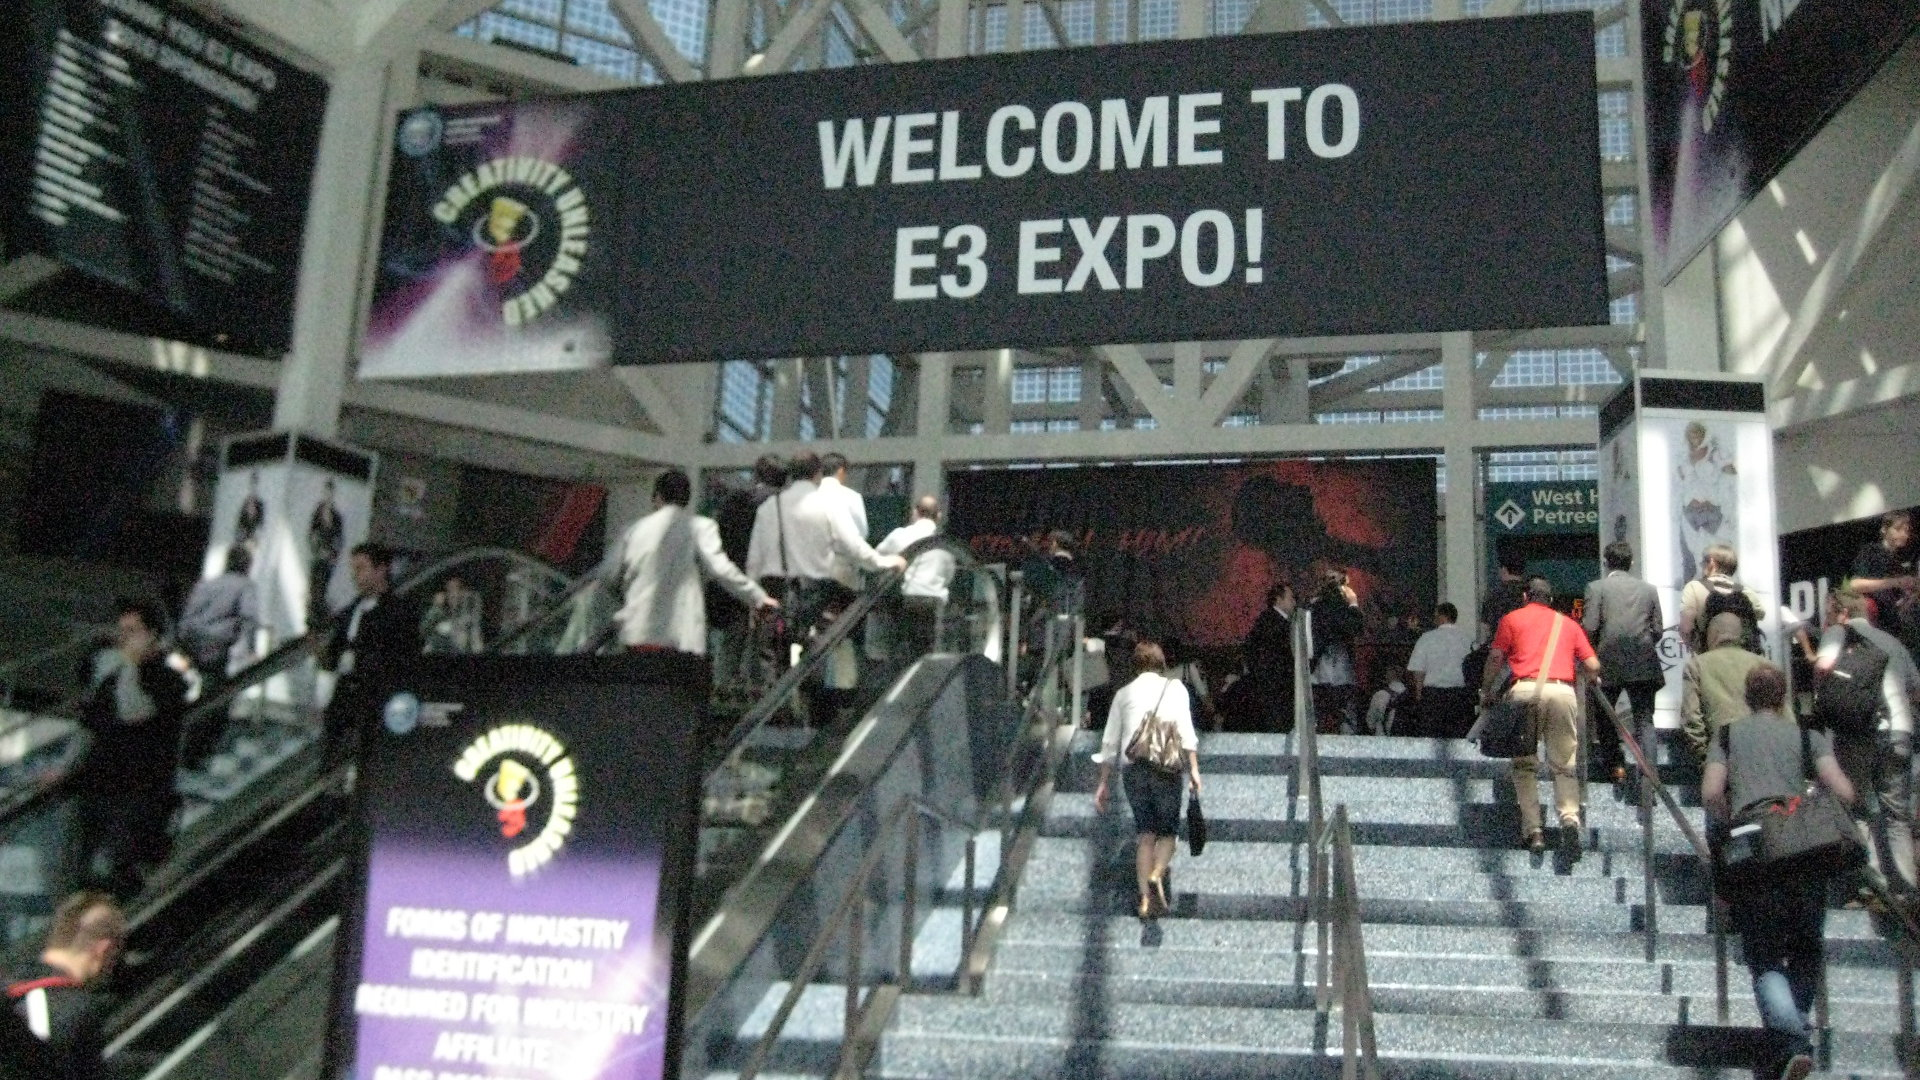 E3 2010, welcome signage, Jun 16, 2010, by sgfogel05 (1920x1080)